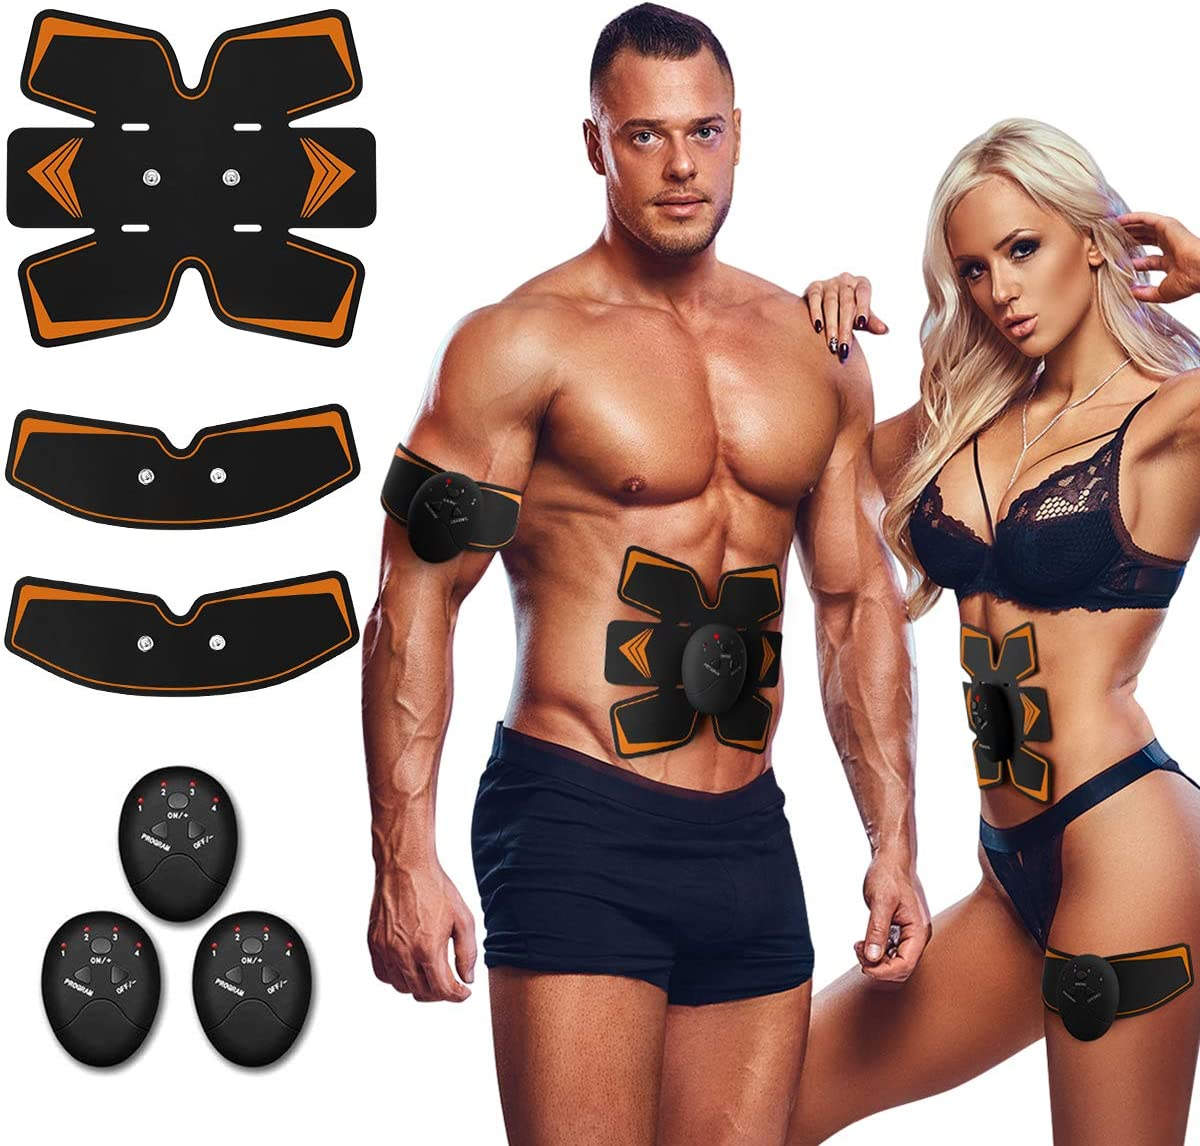 Antmona Abs Stimulator, Muscle Toner - Abs Stimulating Belt- Abdominal Toner- Training Device for Muscles- Wireless Portable to-Go Gym Device- Muscle Sculpting at Home- Fitness Equipment, Black : Sports & Outdoors